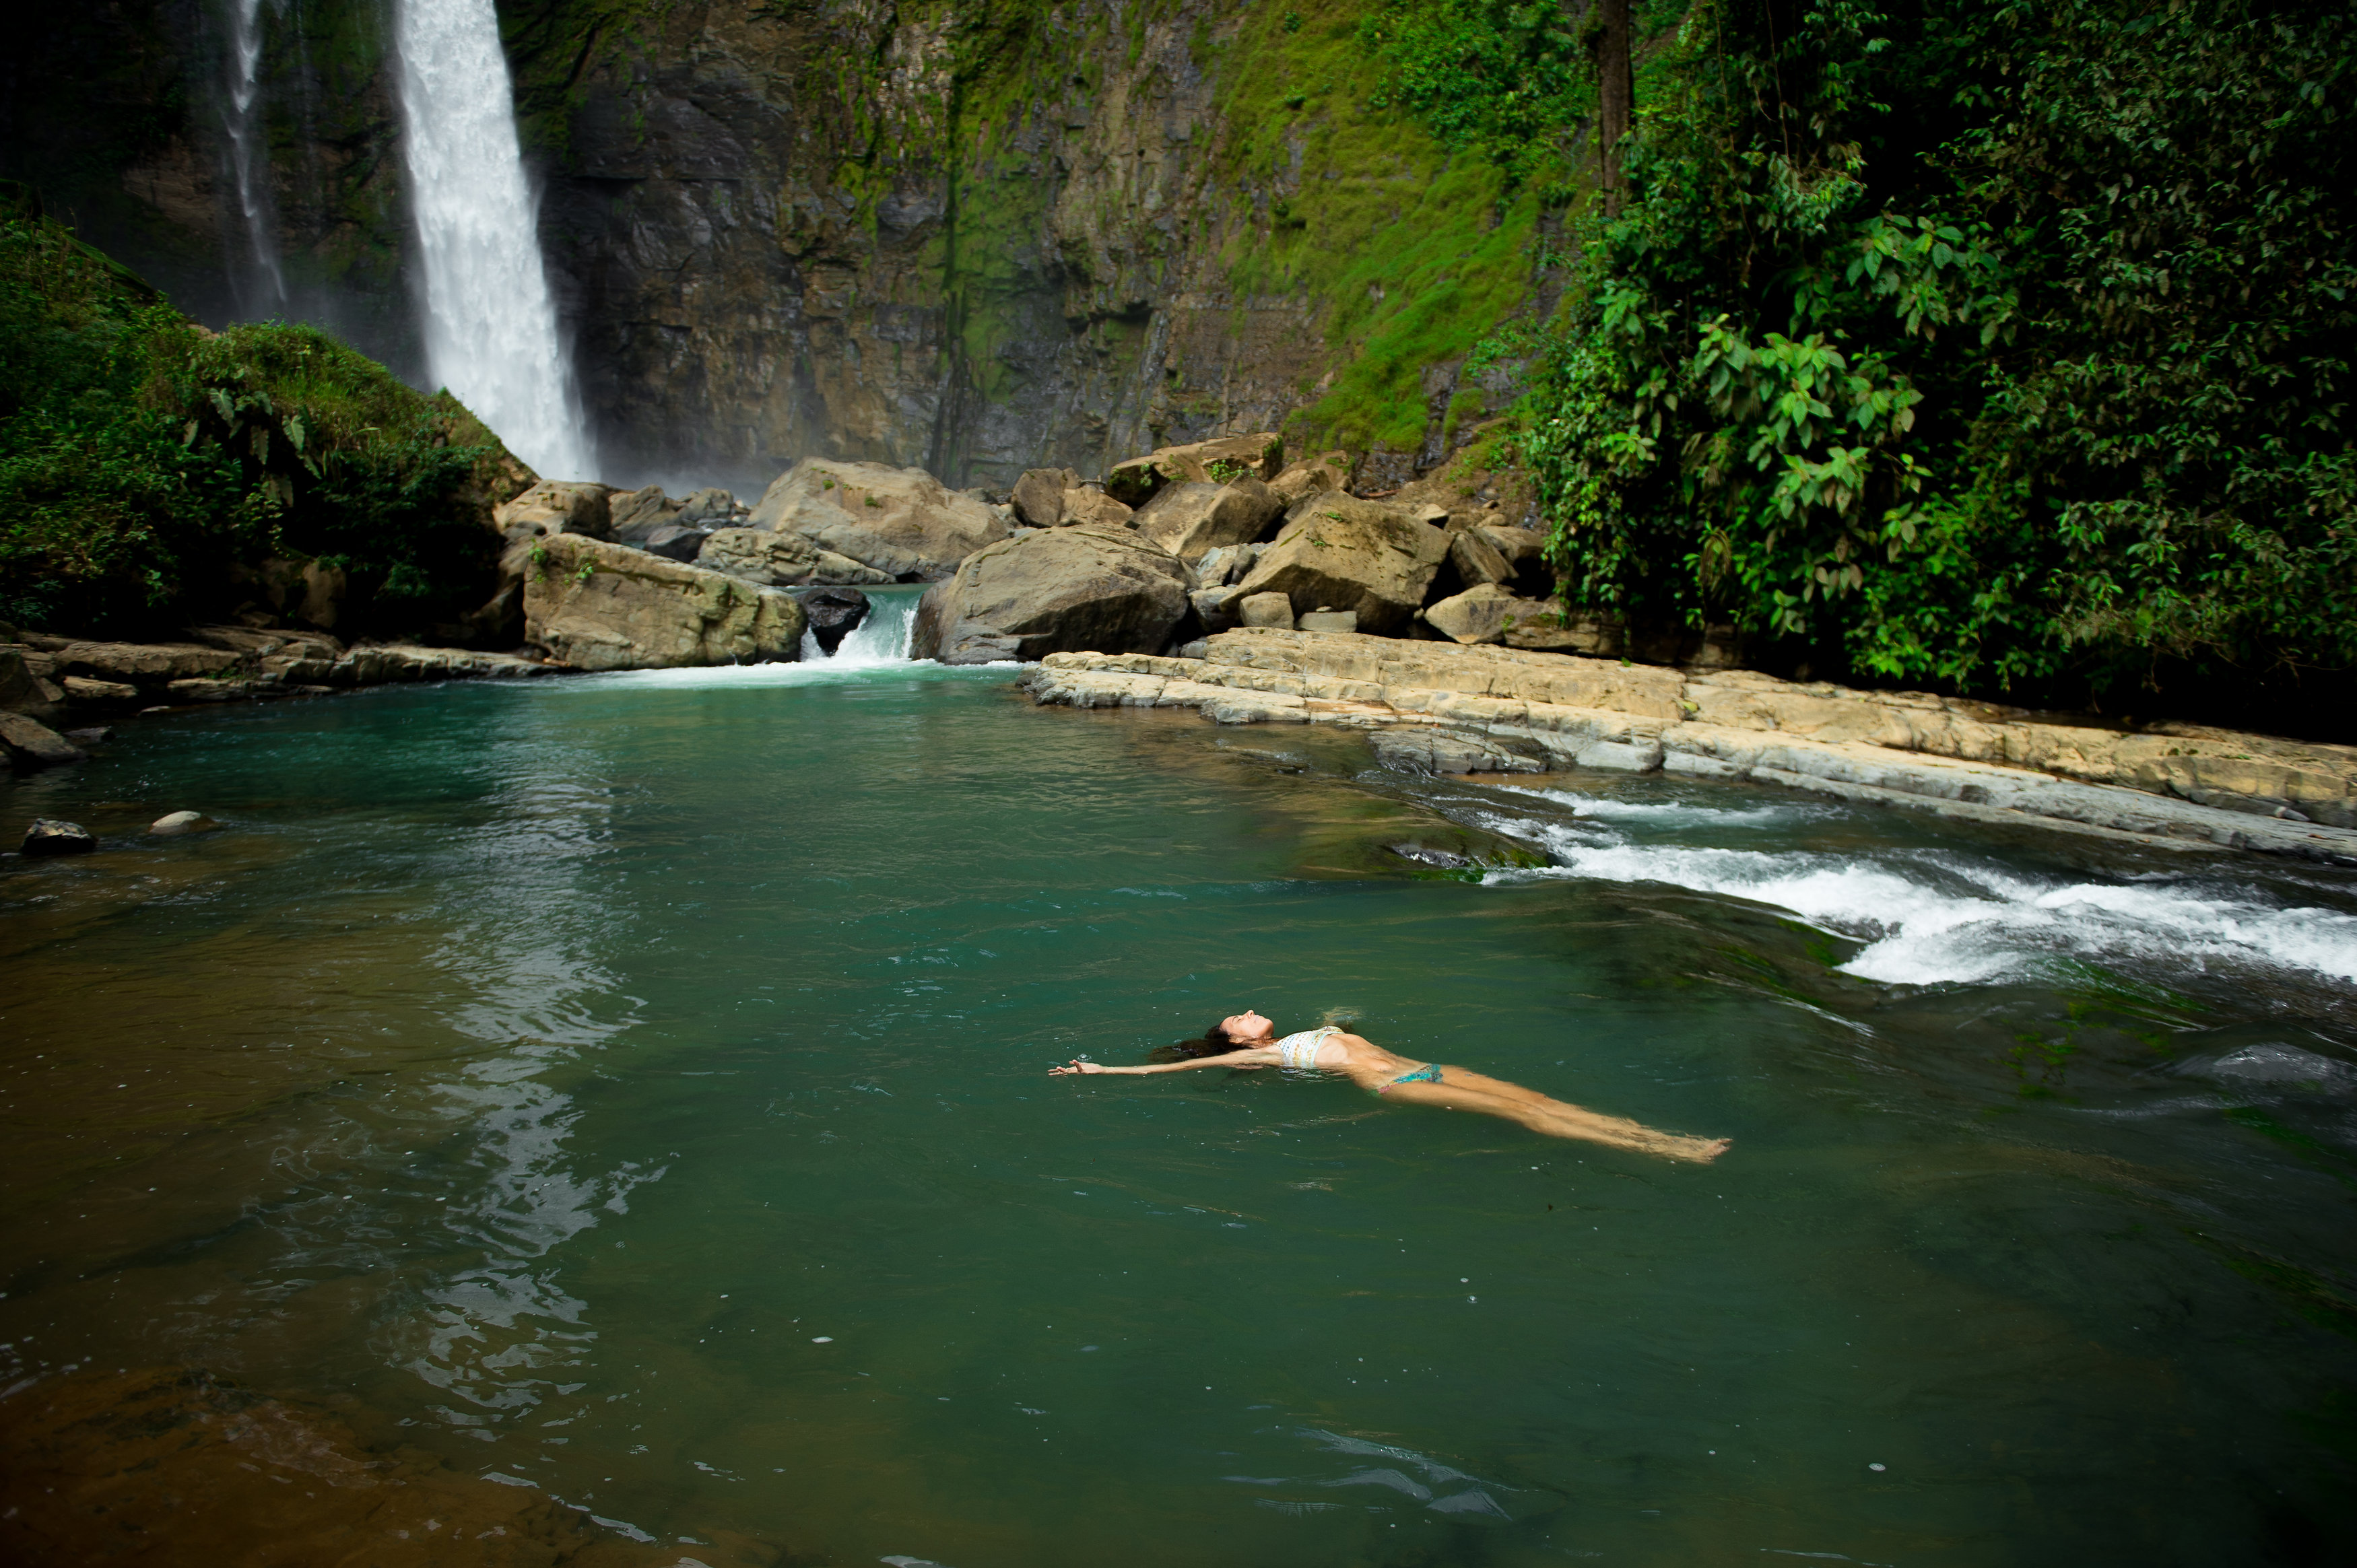 megan-pischke-at-the-eco-chontales-waterfall-photo-courtesy-of-rebecca-amber-photography